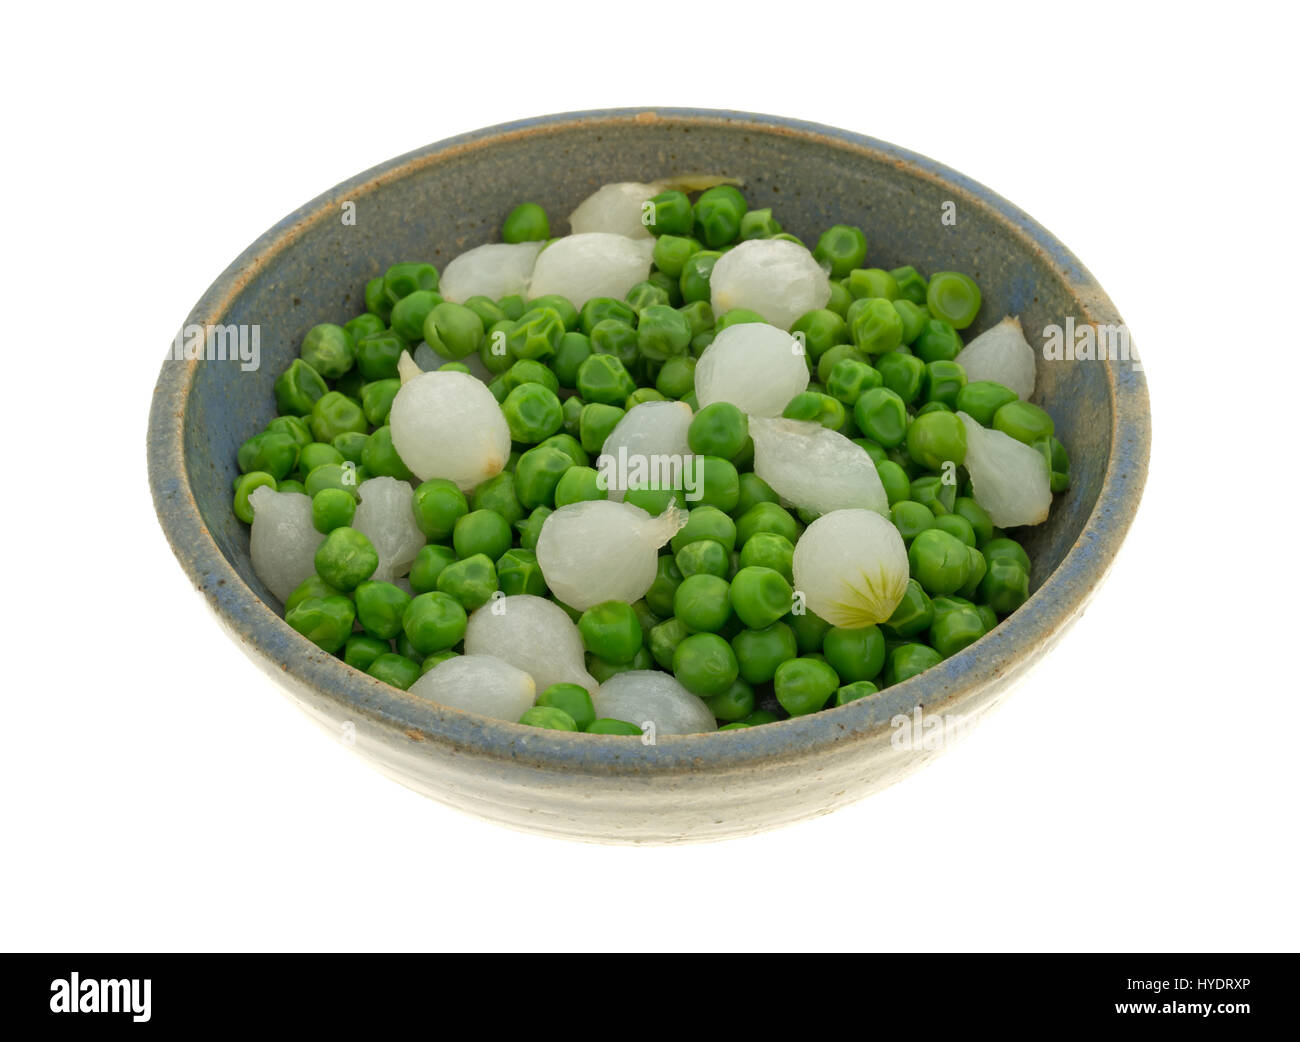 A stoneware bowl filled with cooked pearl onions and green peas isolated on a white background. - Stock Image